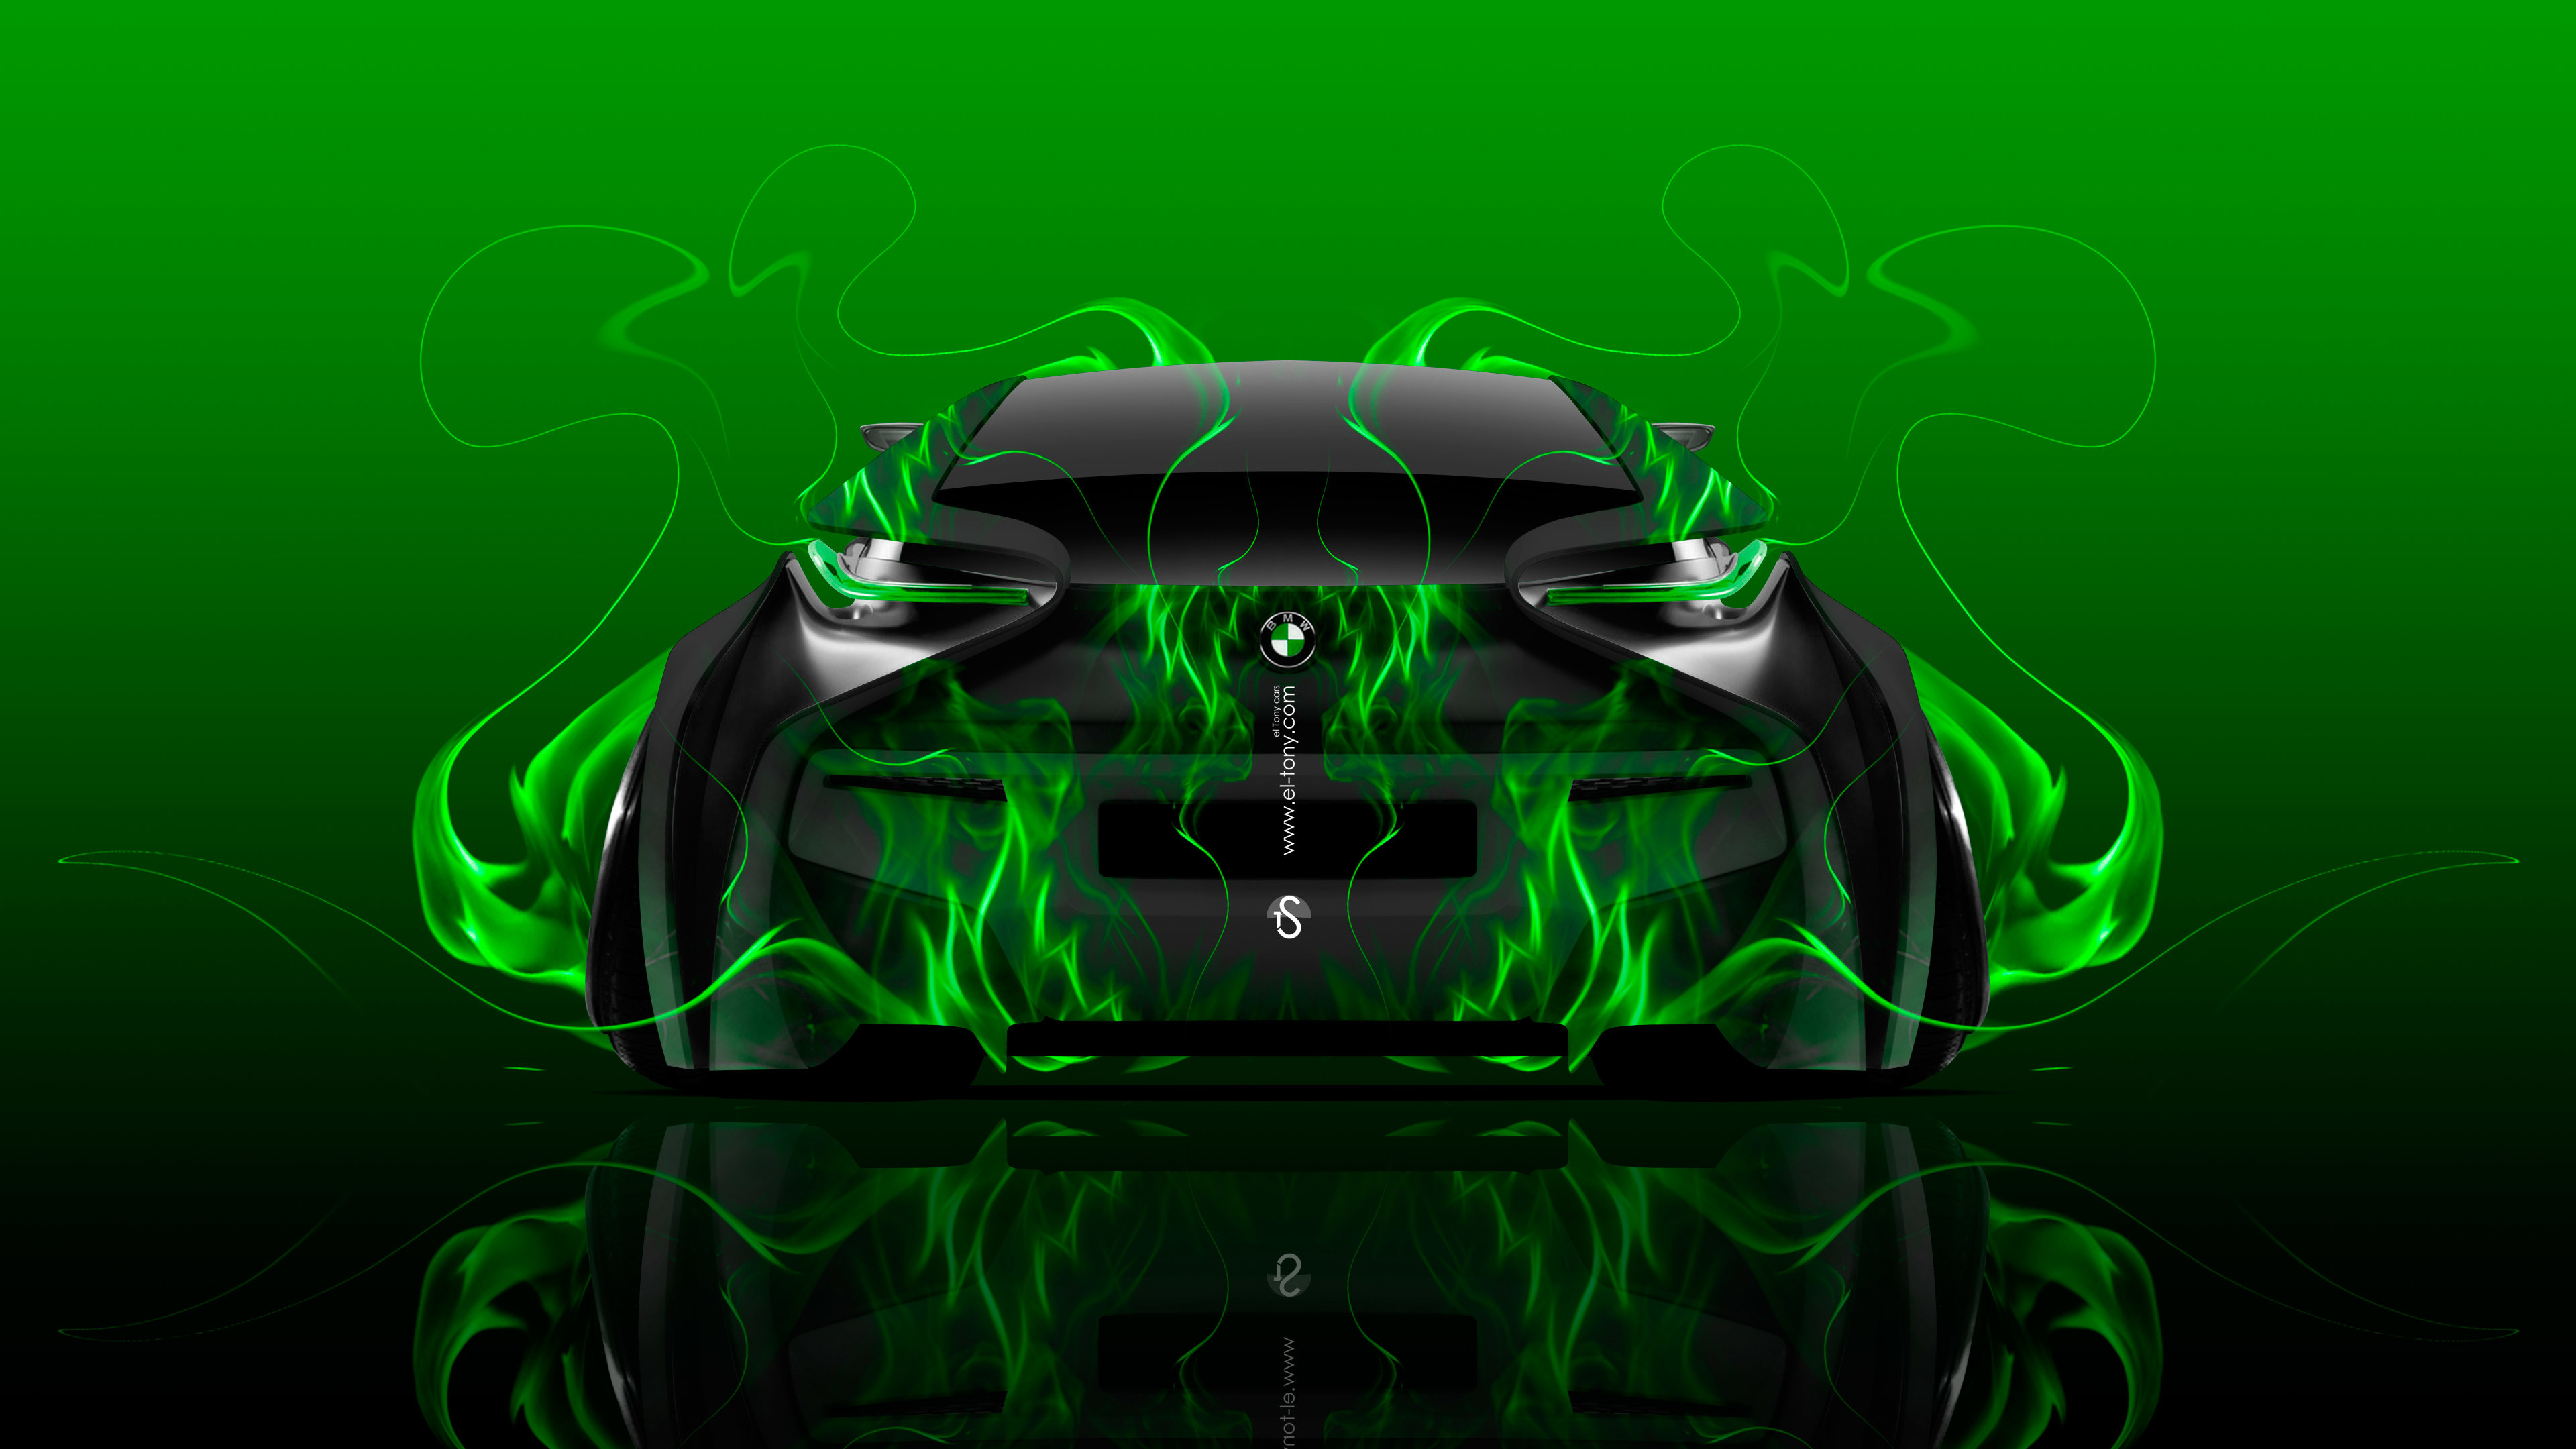 Green Flame Wallpaper (63+ images)